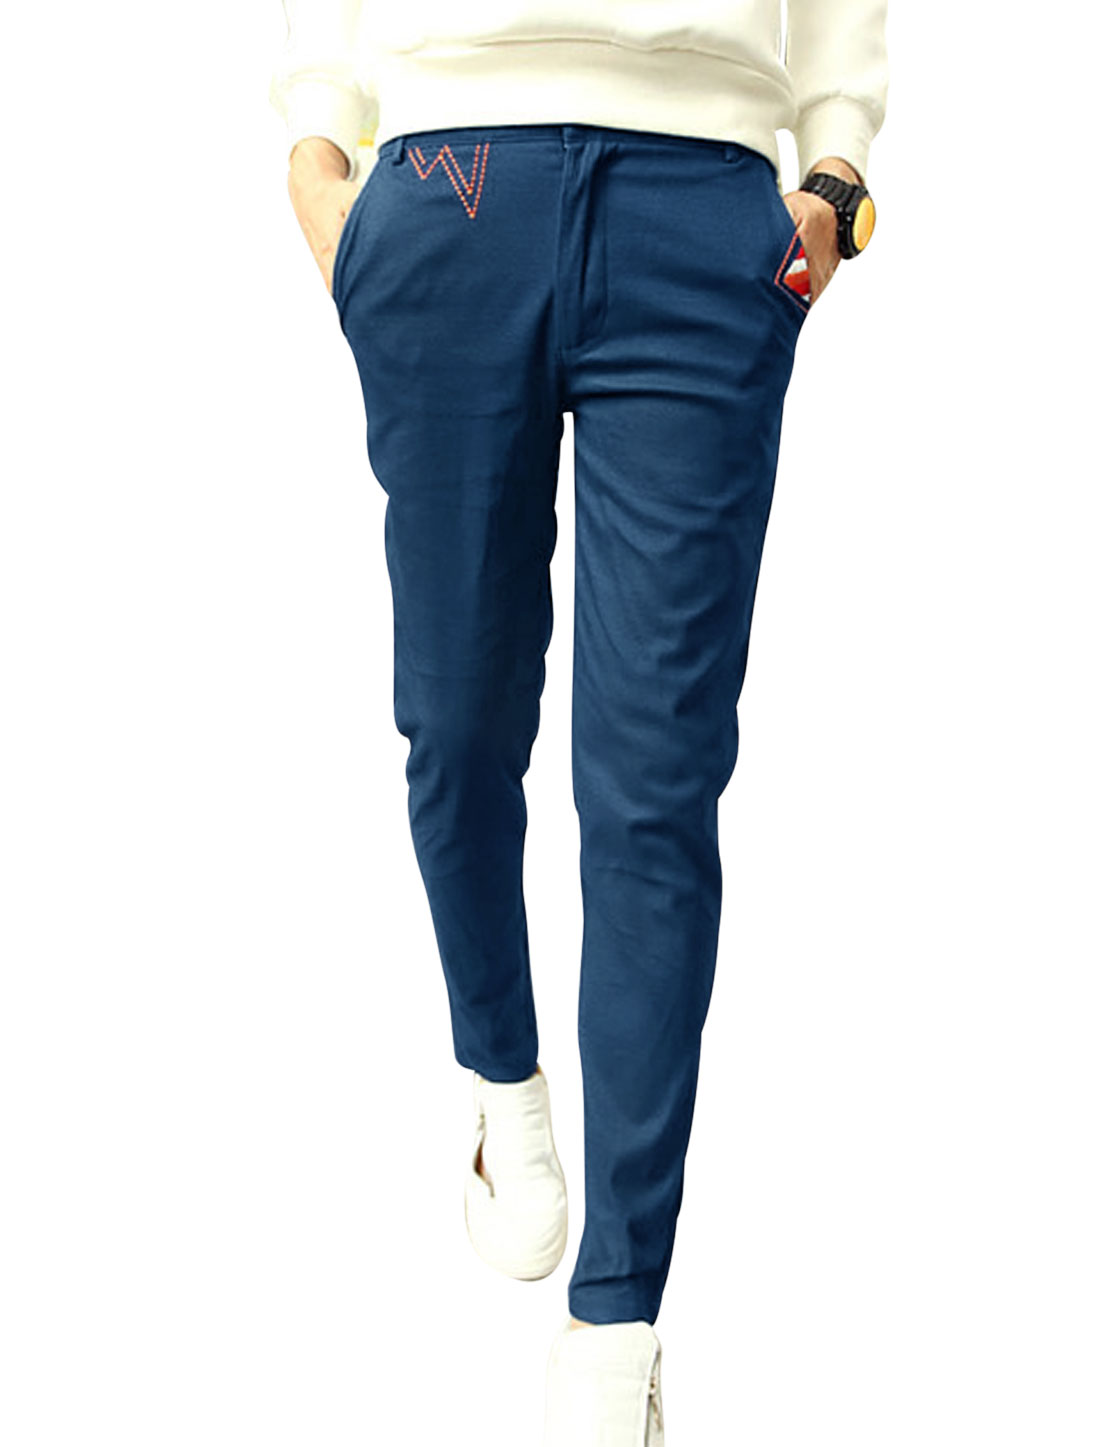 Slim Fit Button Closure Zip Fly Dark Blue Casual Pants for Man W30